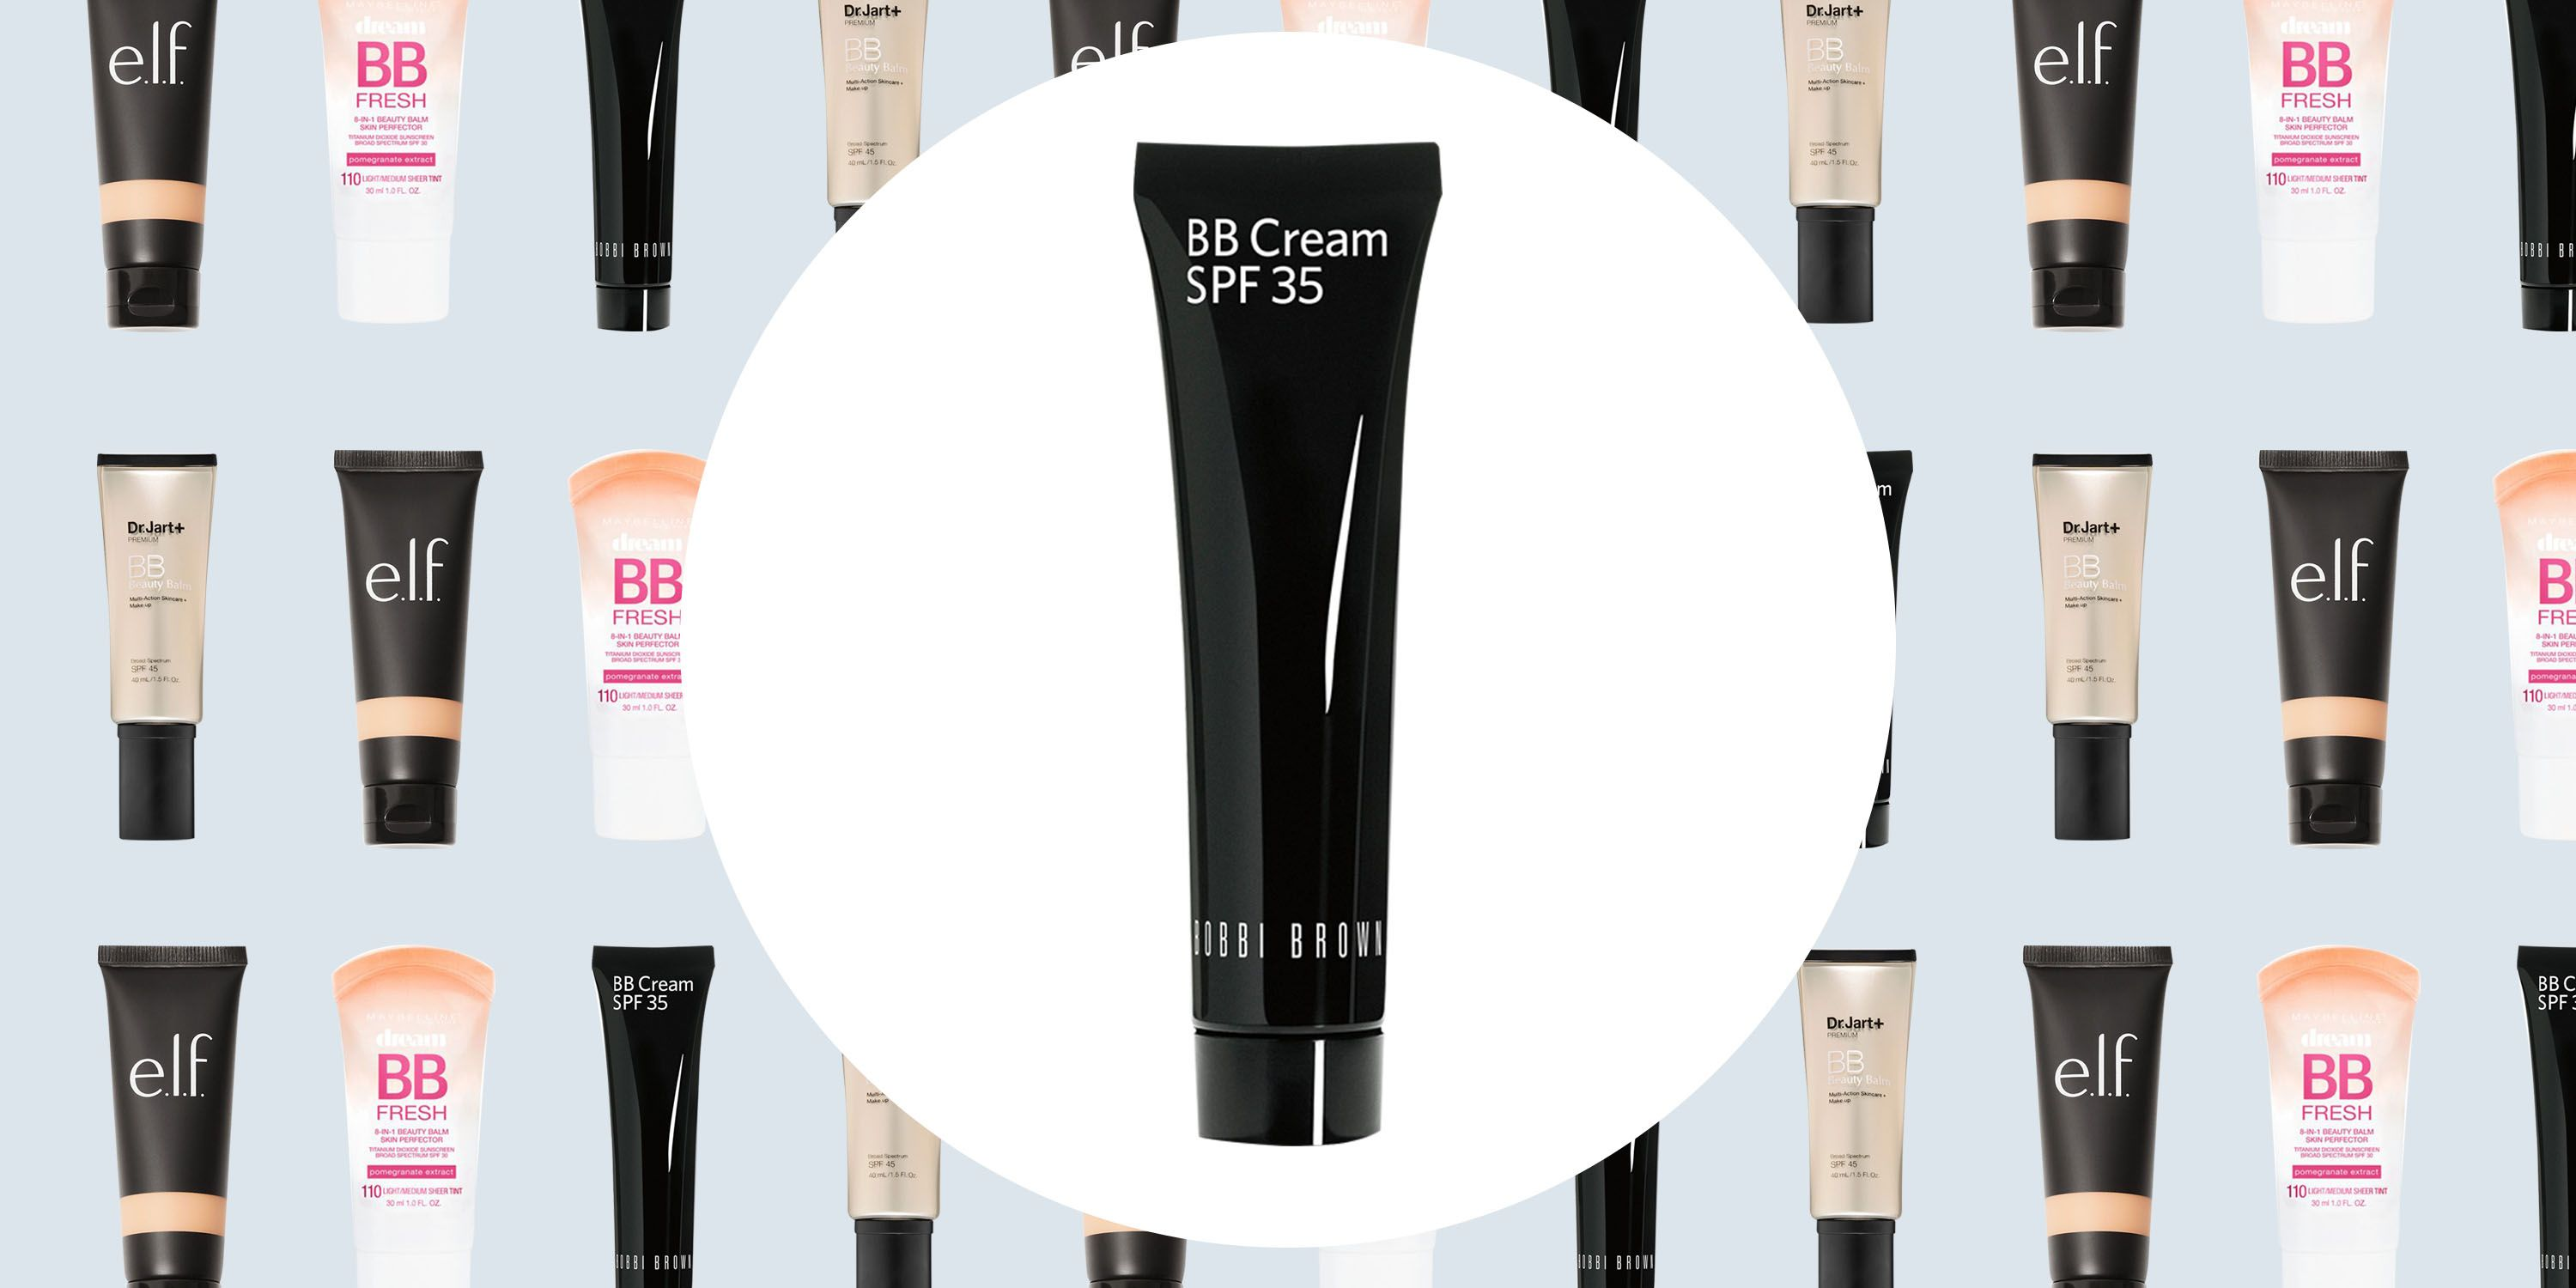 9 Best BB Creams to Give Your Dry Skin a Dewy Glow